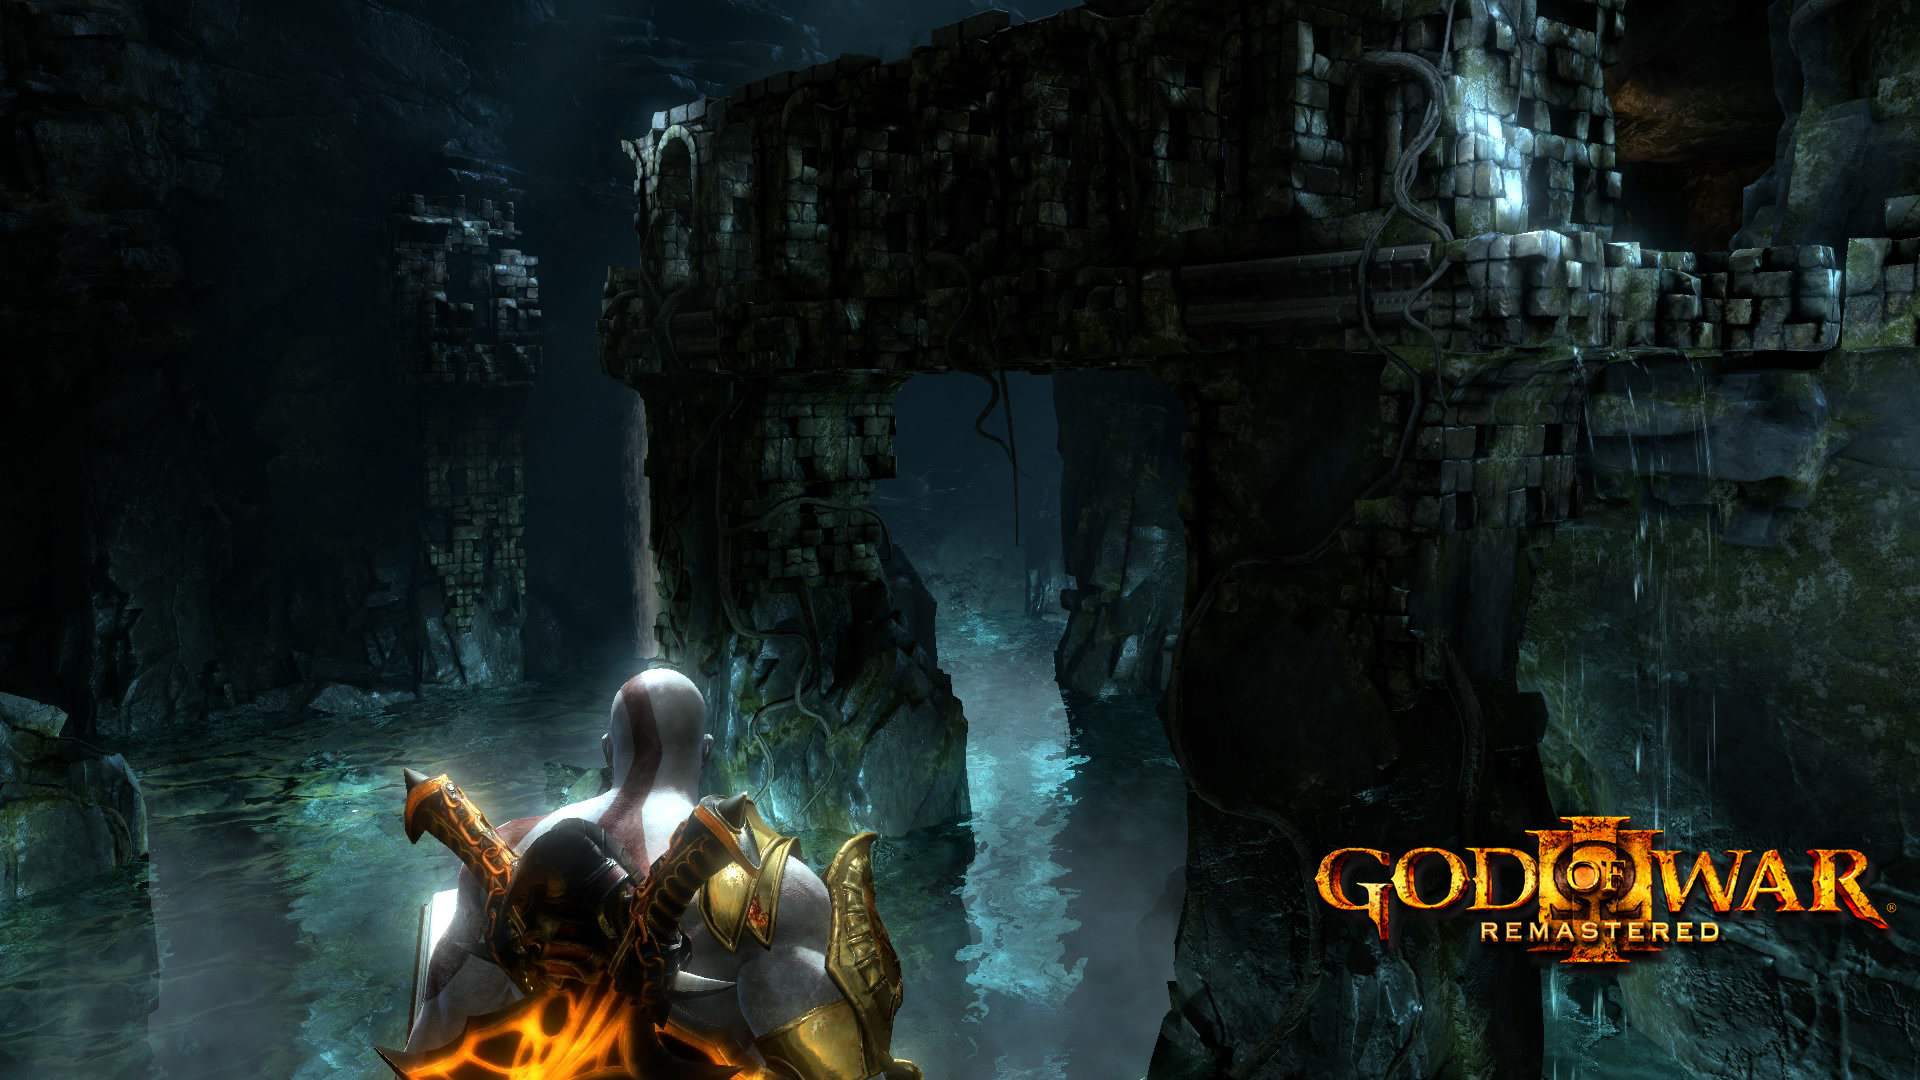 god-of-war-iii-remastered-screen-01-ps4-